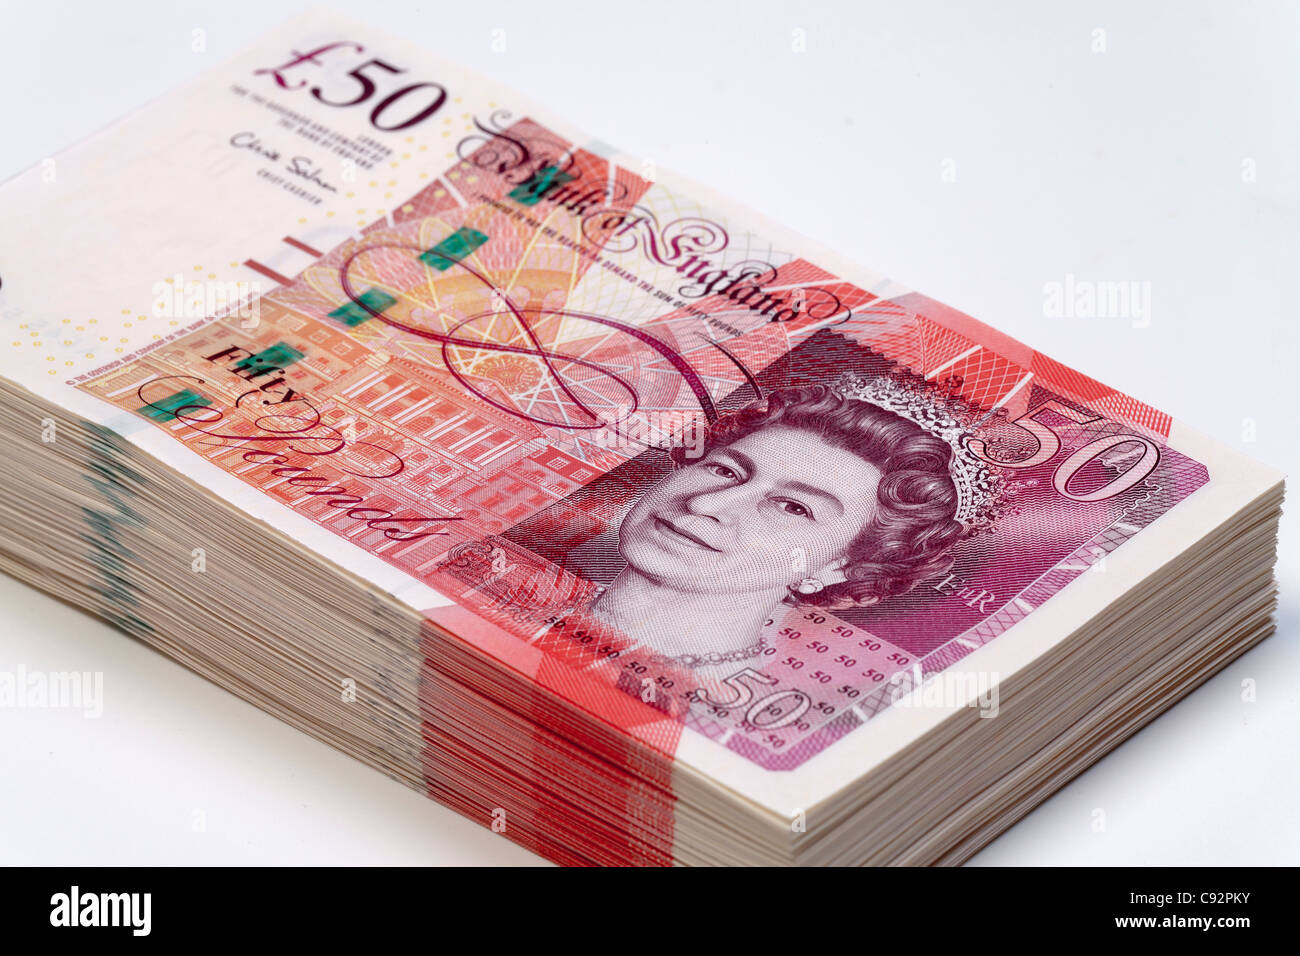 50 pound British currency bank notes £50 cash wealthy rich cash pile - Stock Image